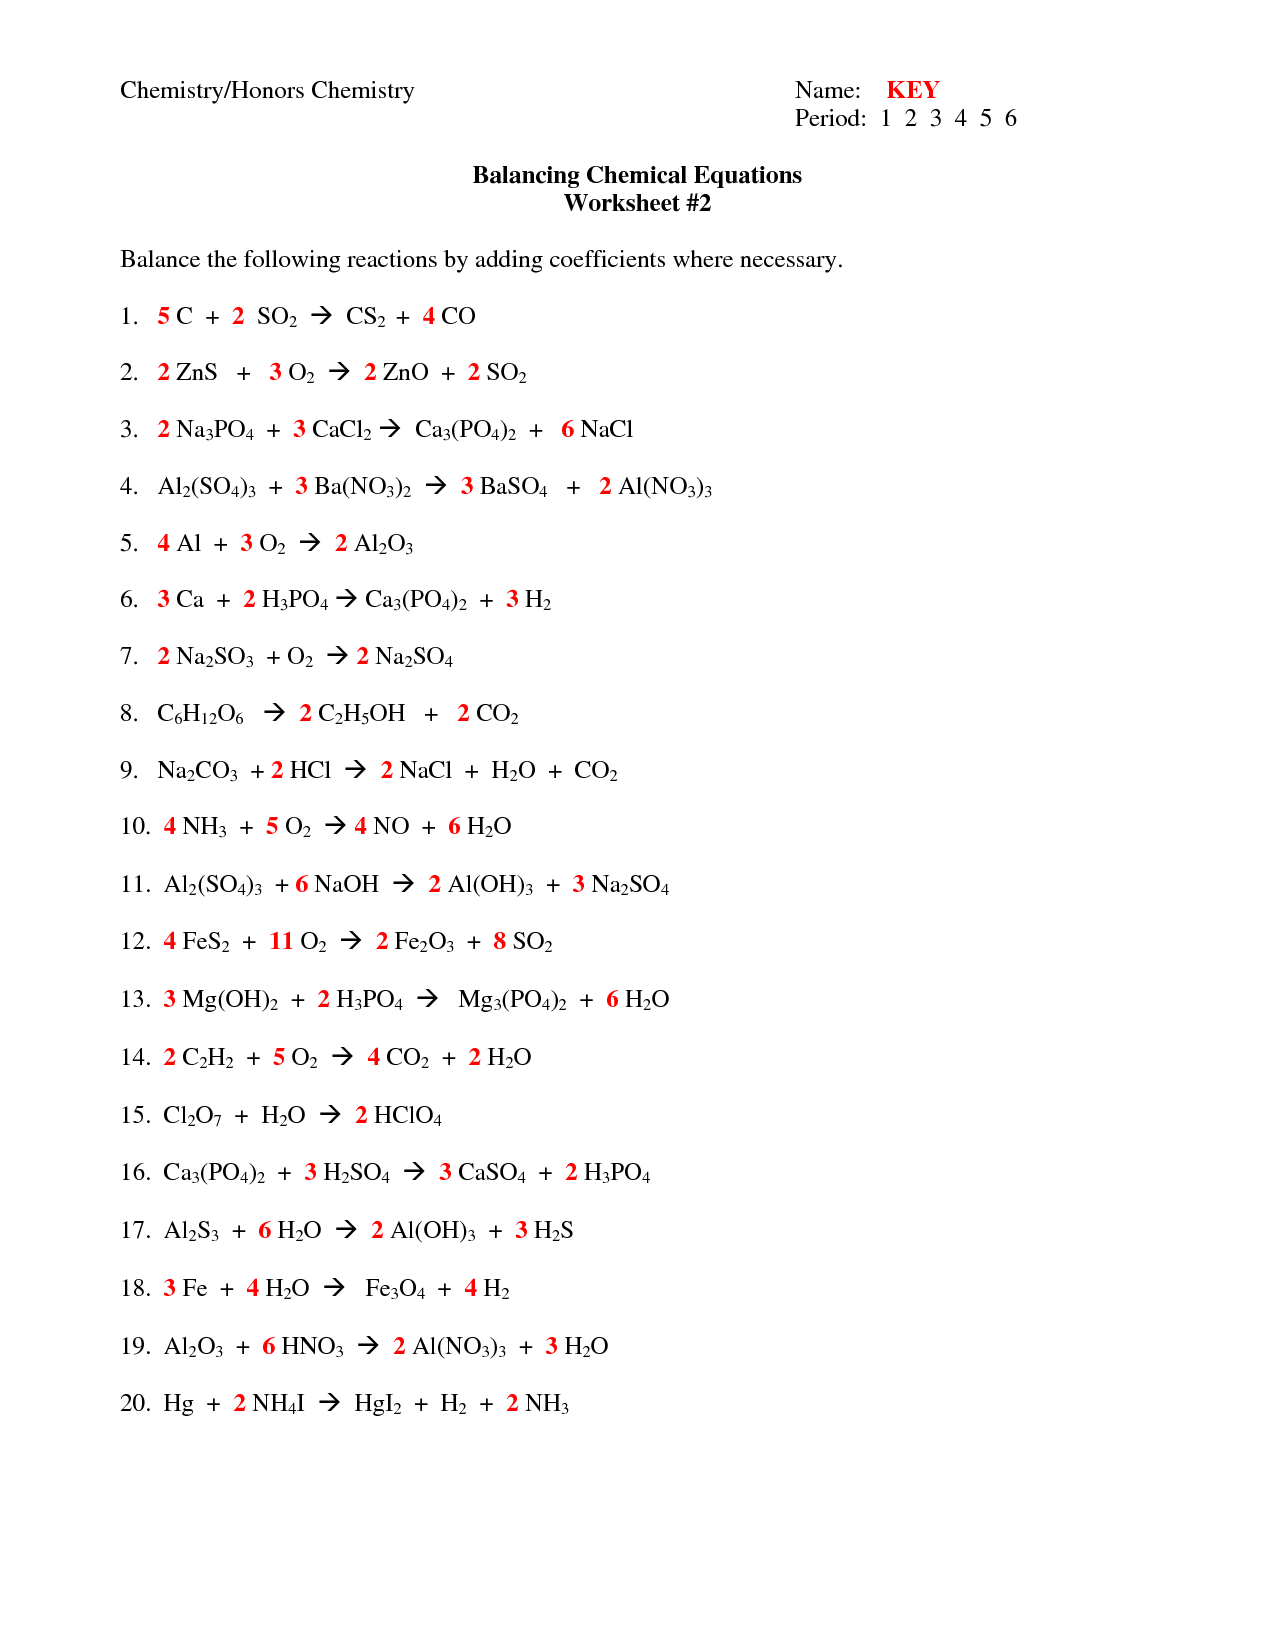 Balancing Chemical Equations Worksheet Answers 1 50